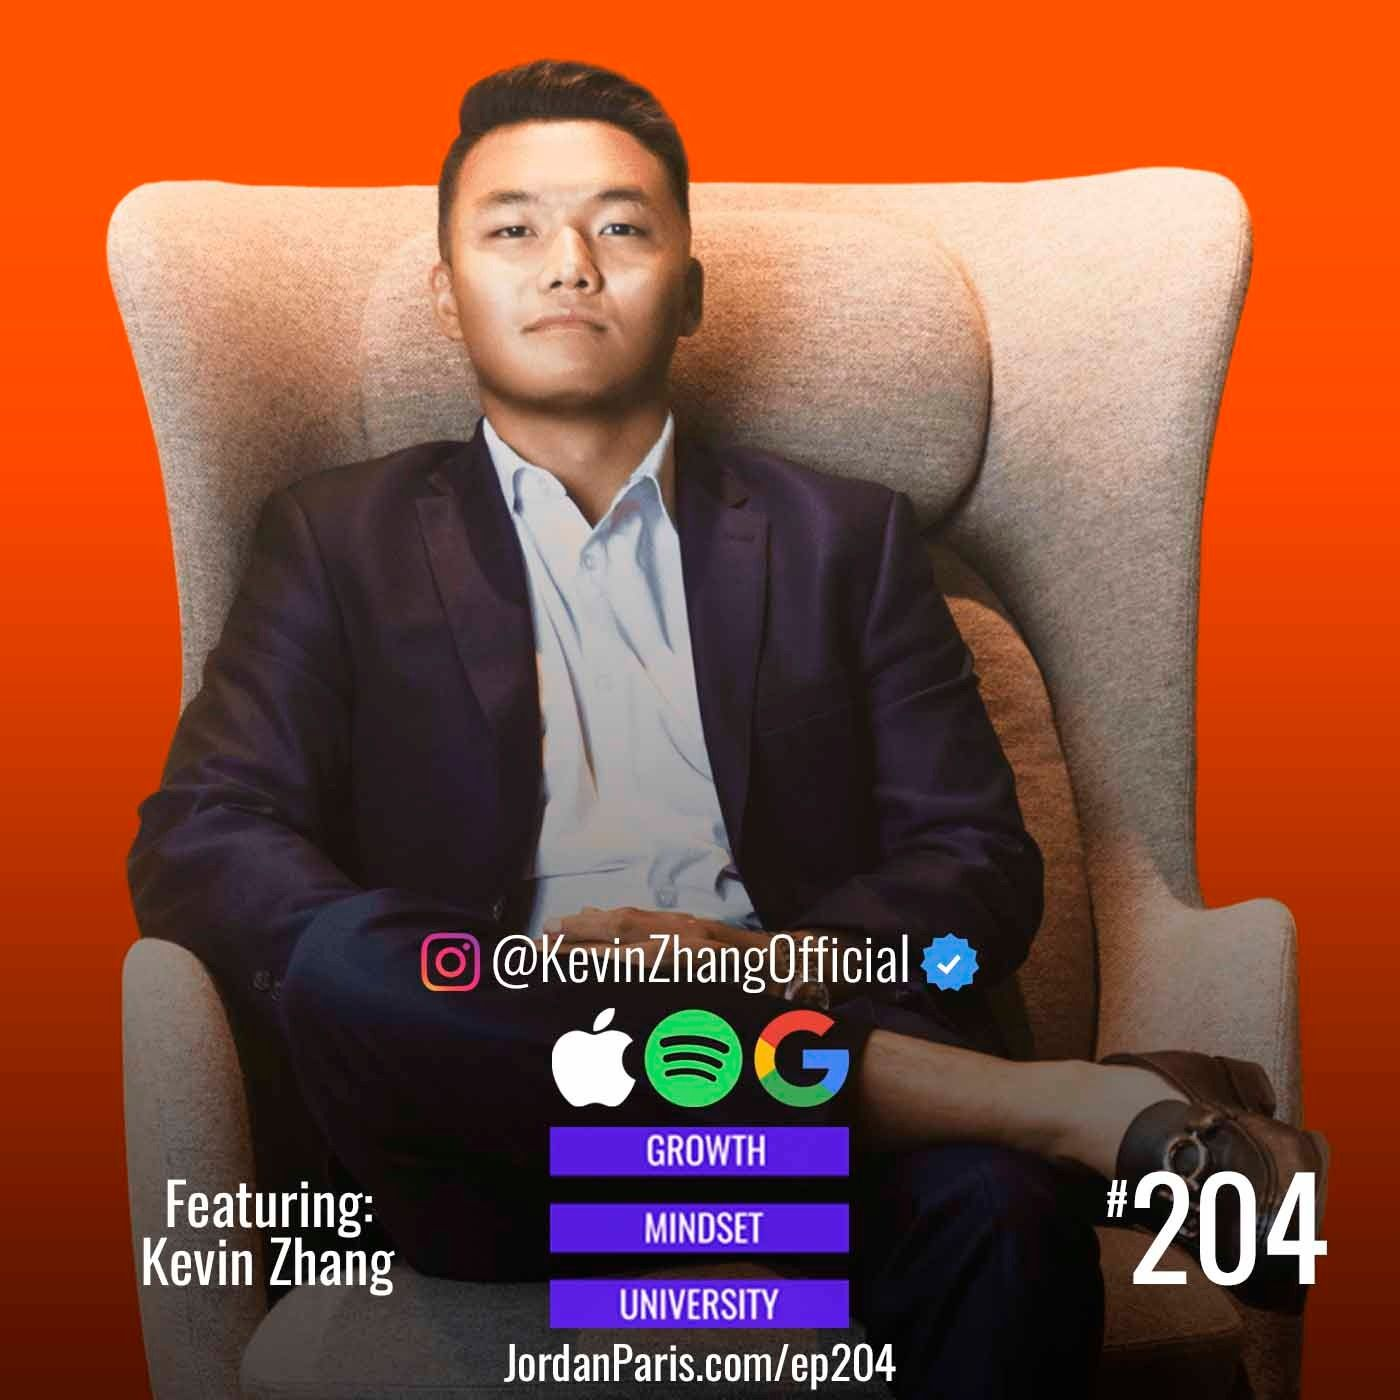 How to Scale to $20M in Revenue This Year with Kevin Zhang